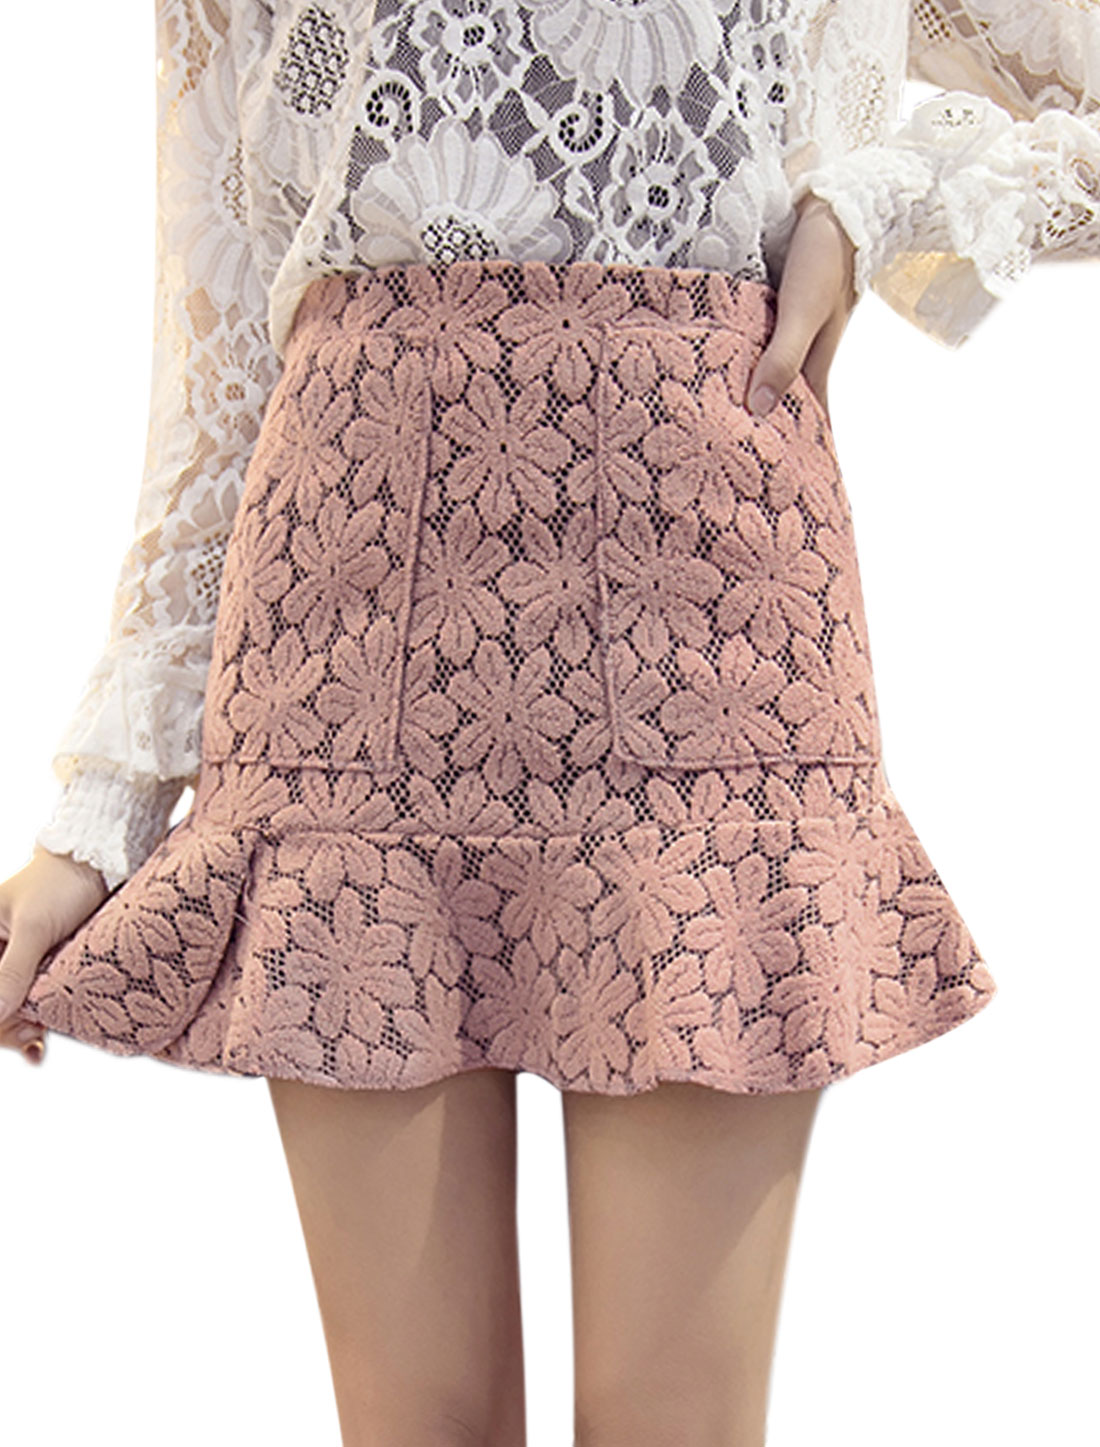 Women High Waist Flouncing Hem Flower Design Mini Skirt Pink S